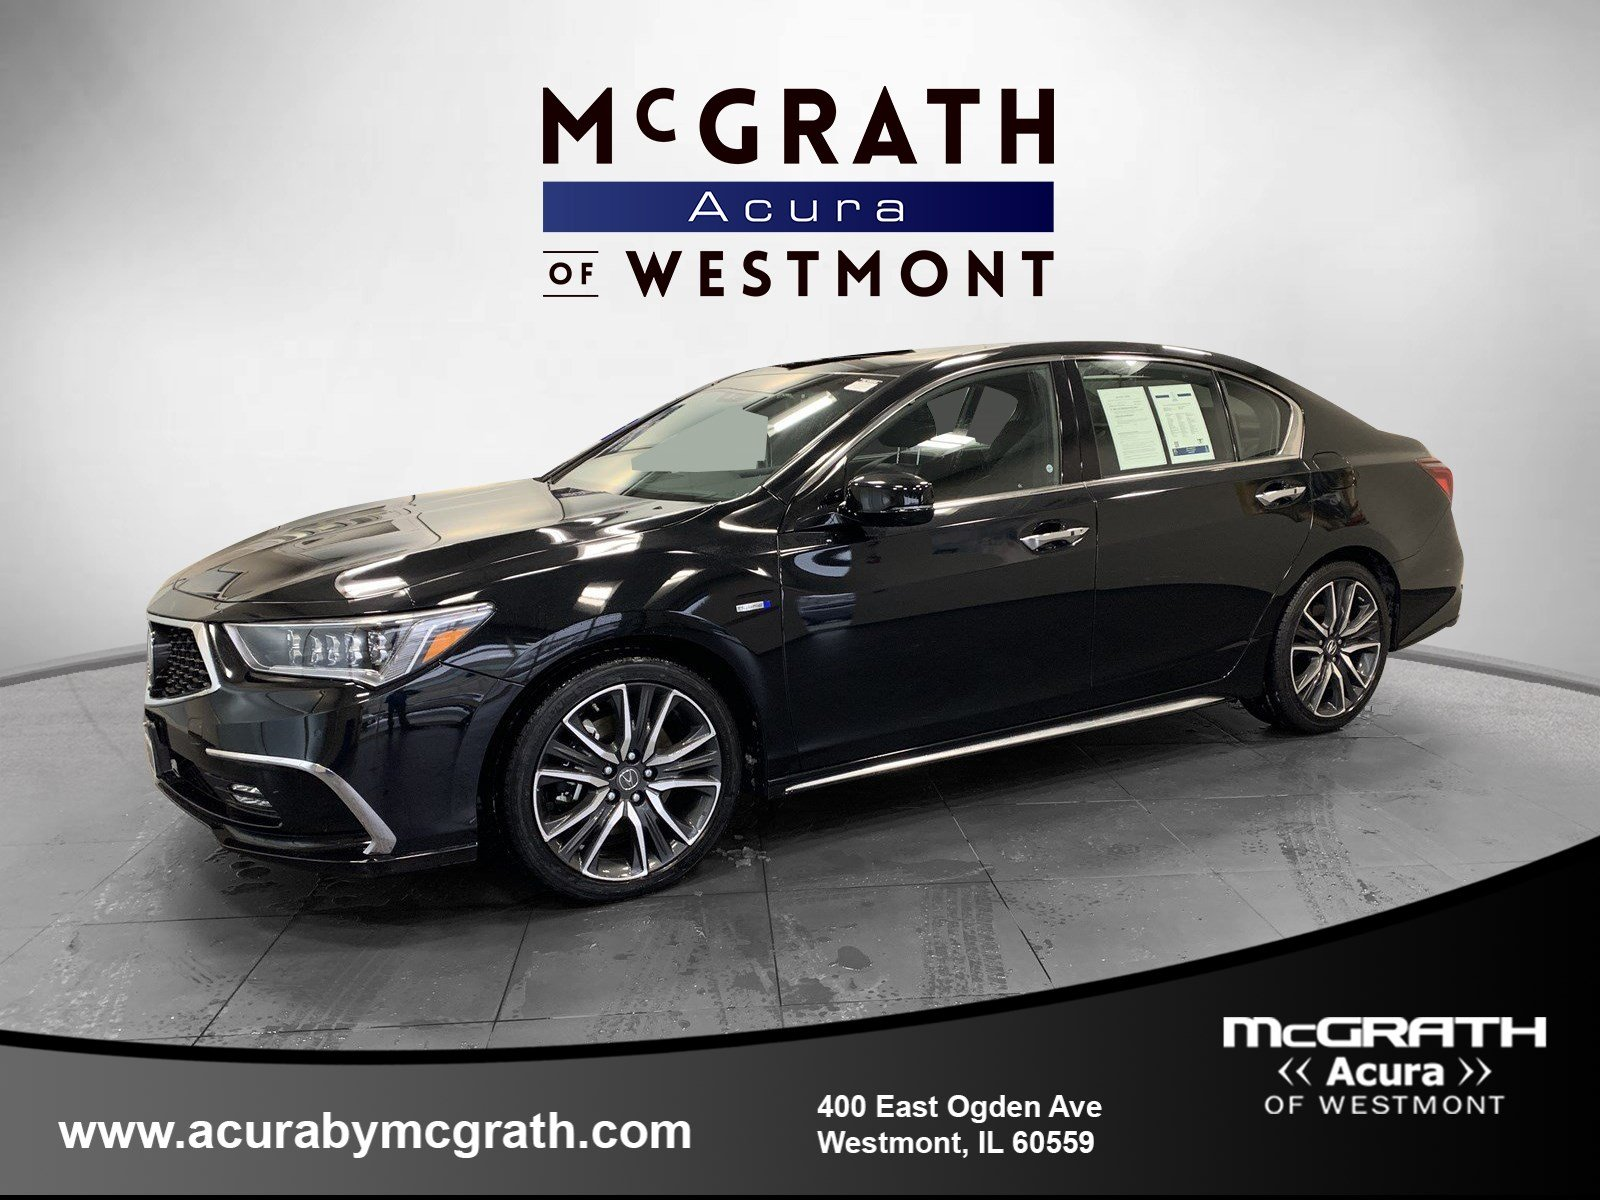 Certified Pre-Owned 2019 Acura RLX SPORT HYBRID SHAWD ADV